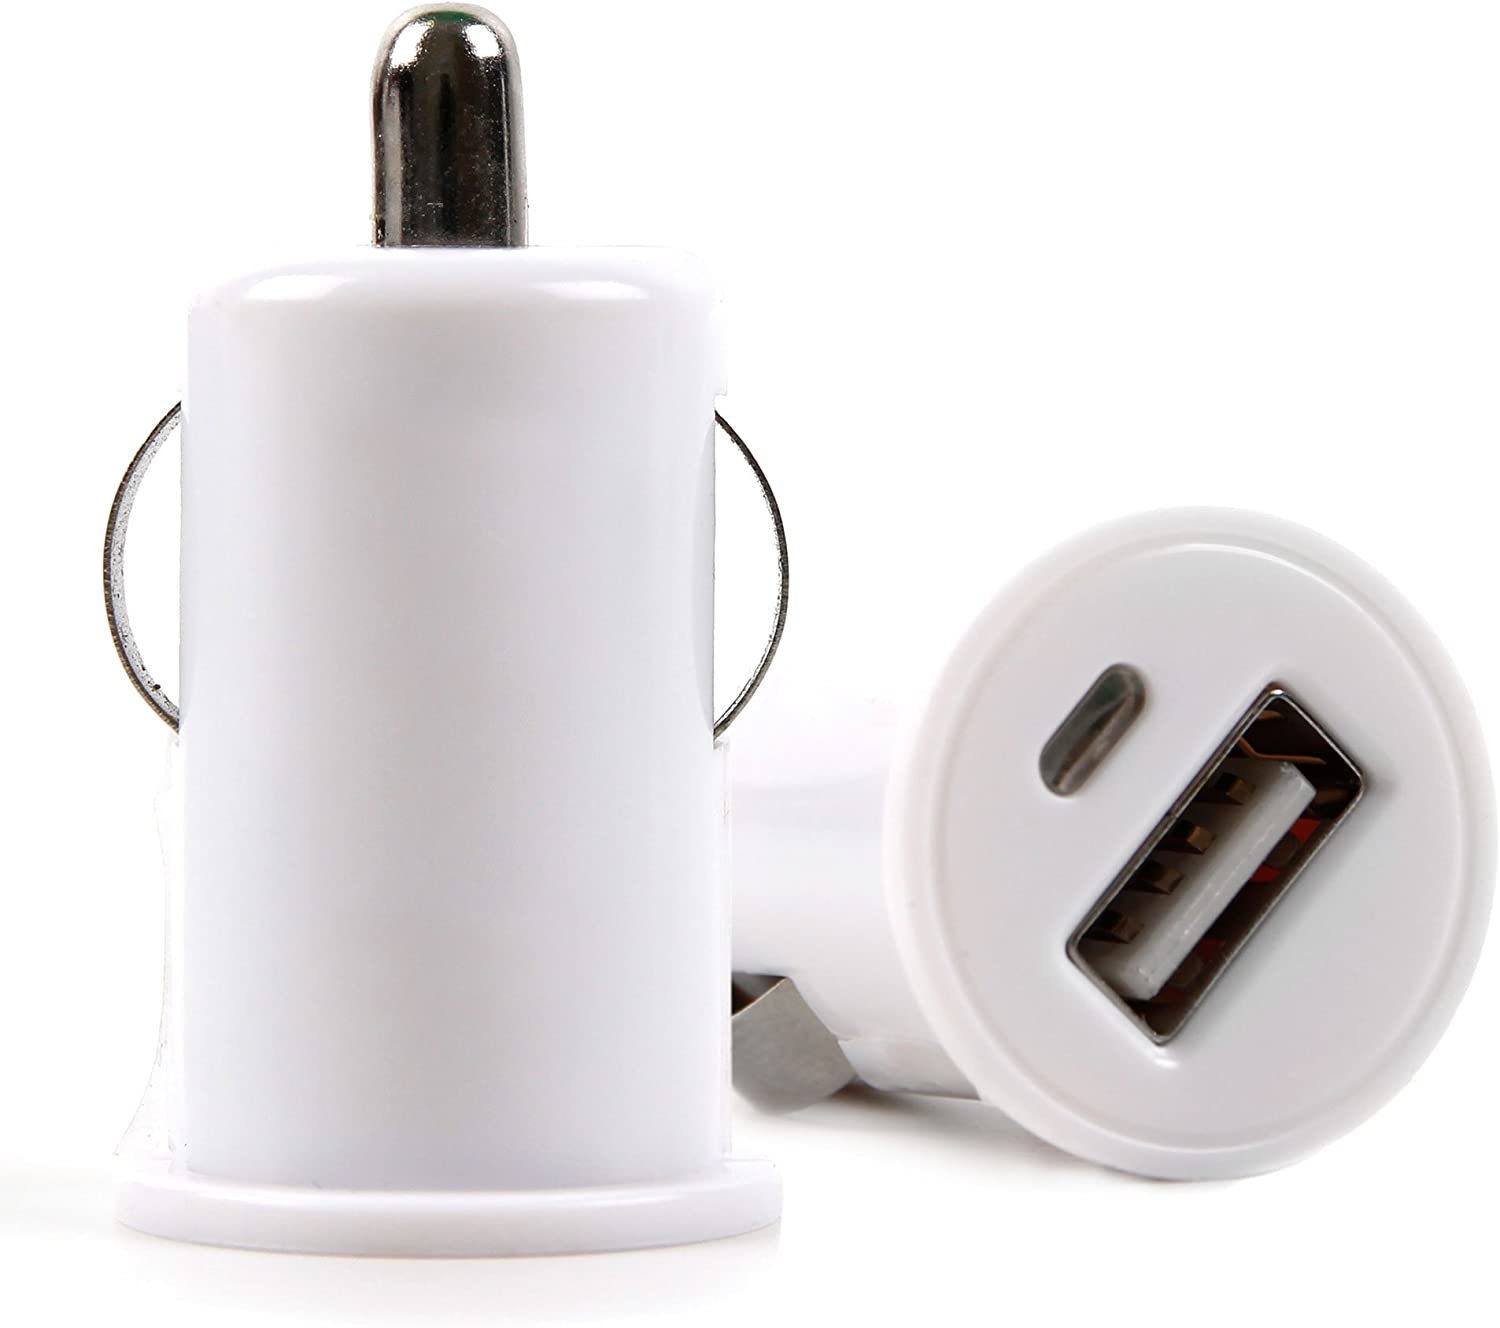 DURAGADGET White in-Car Cigarette 1 Amp Socket Charger - Compatible with Acer Iconia A1-830 | Iconia B1-720 | Iconia Tab A1-810 & Iconia Tab B1-710